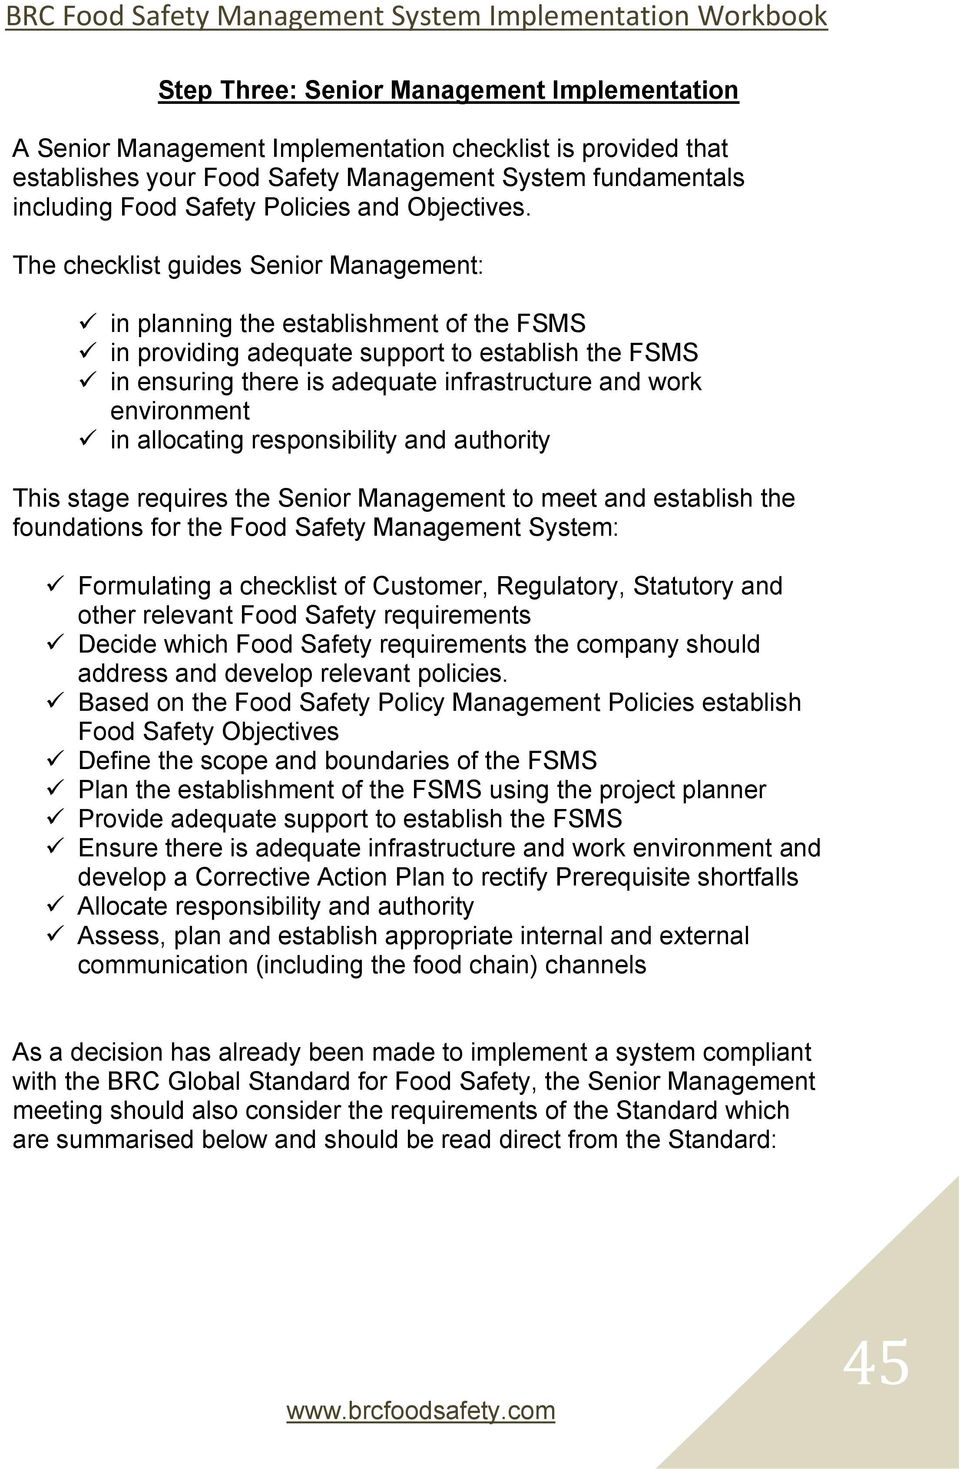 The checklist guides Senior Management: in planning the establishment of the FSMS in providing adequate support to establish the FSMS in ensuring there is adequate infrastructure and work environment